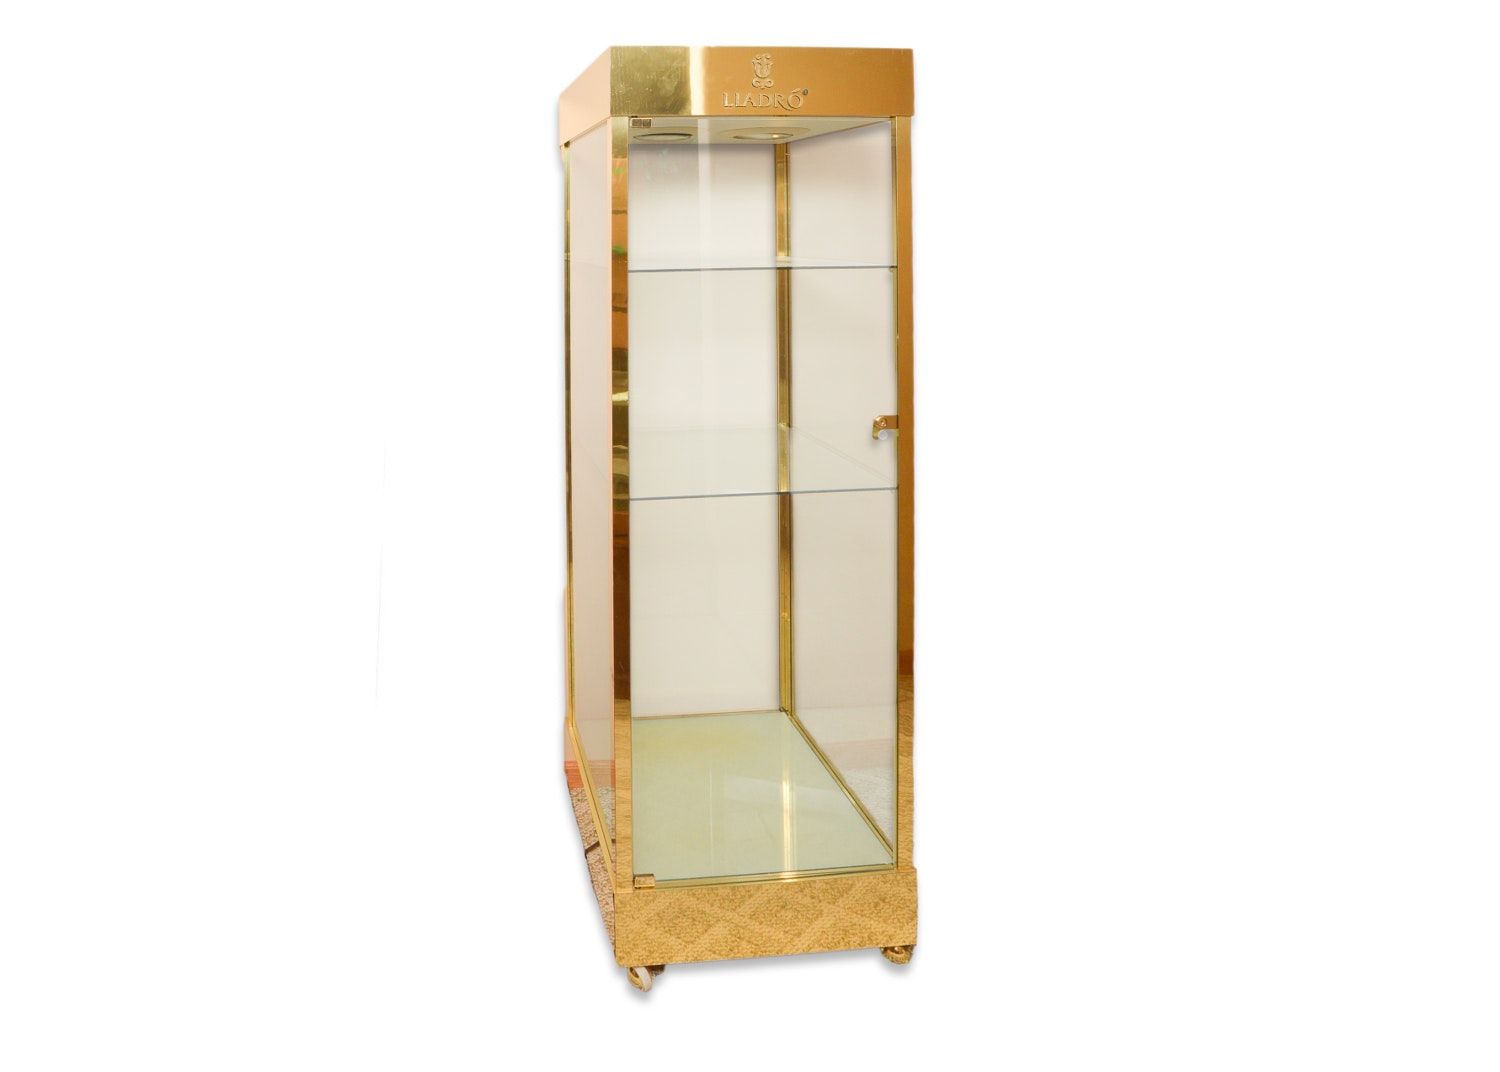 Metal and Glass Retail Display Cabinet by Lladró